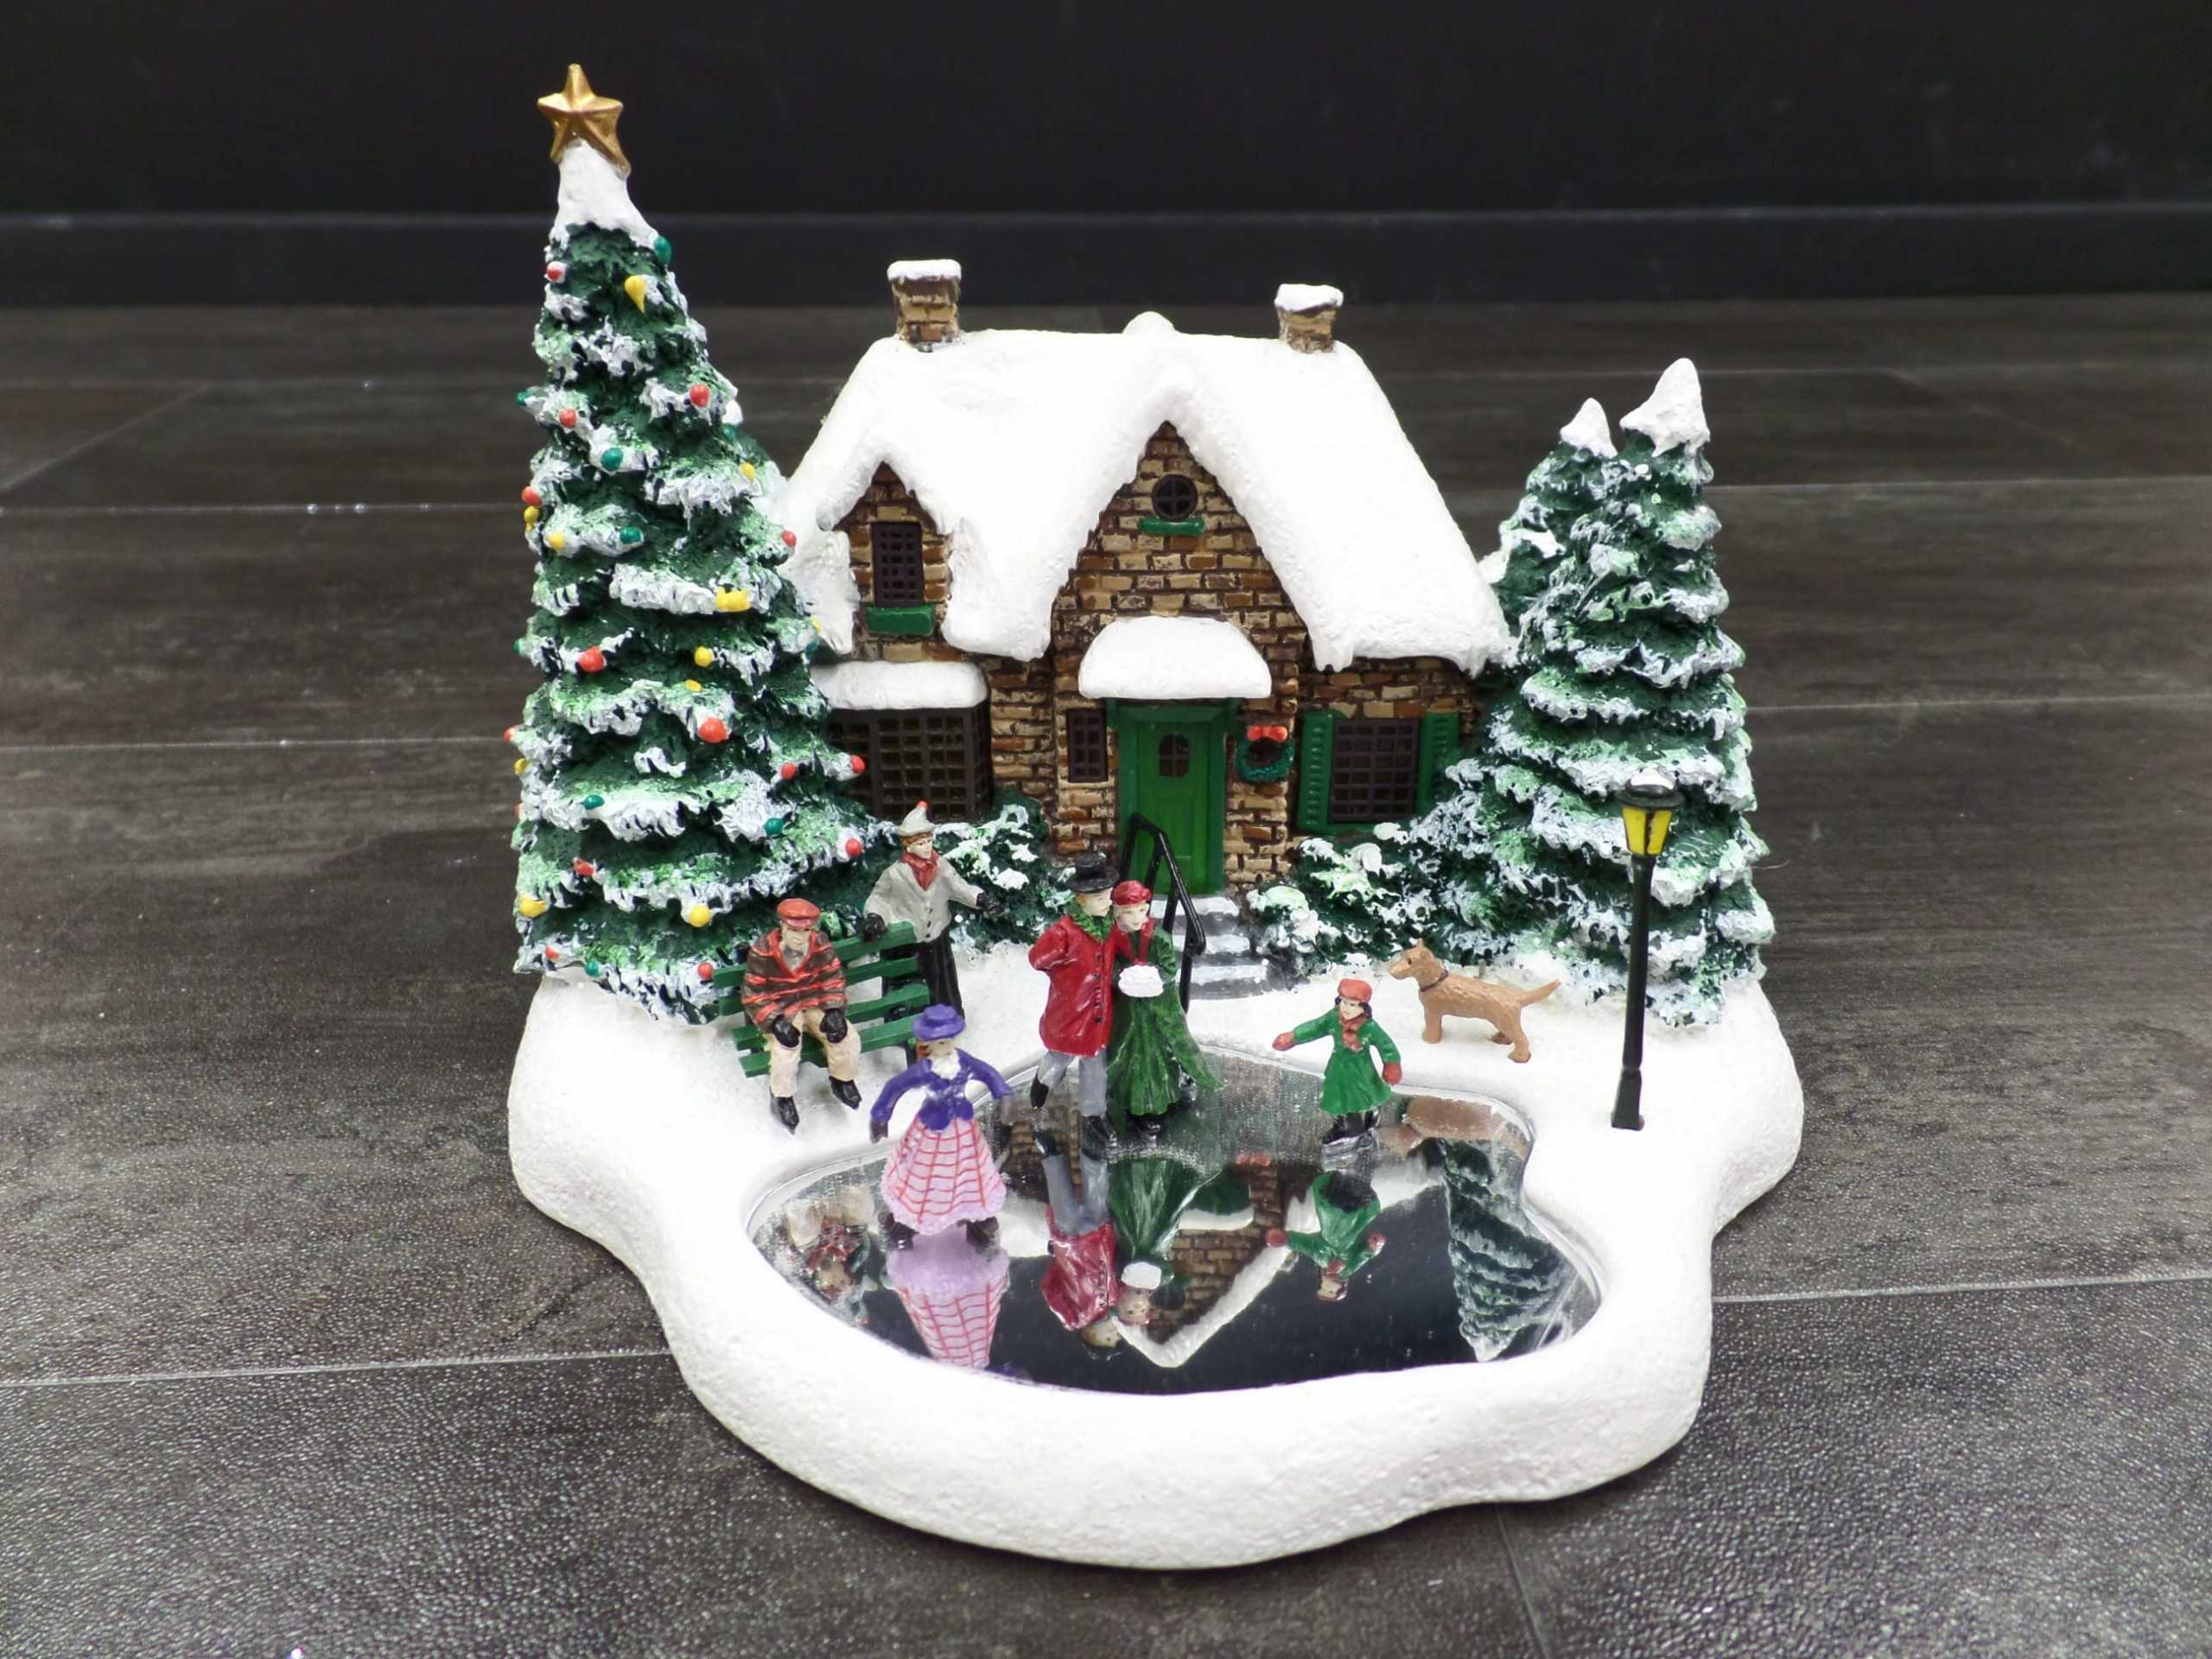 2004 THOMAS KINKADE CHRISTMAS VILLAGE SKATER'S POND <br/> Donated by: WPBS SUPPORTER <br/> Valued at: $30 <br/> Buy It Now: $20